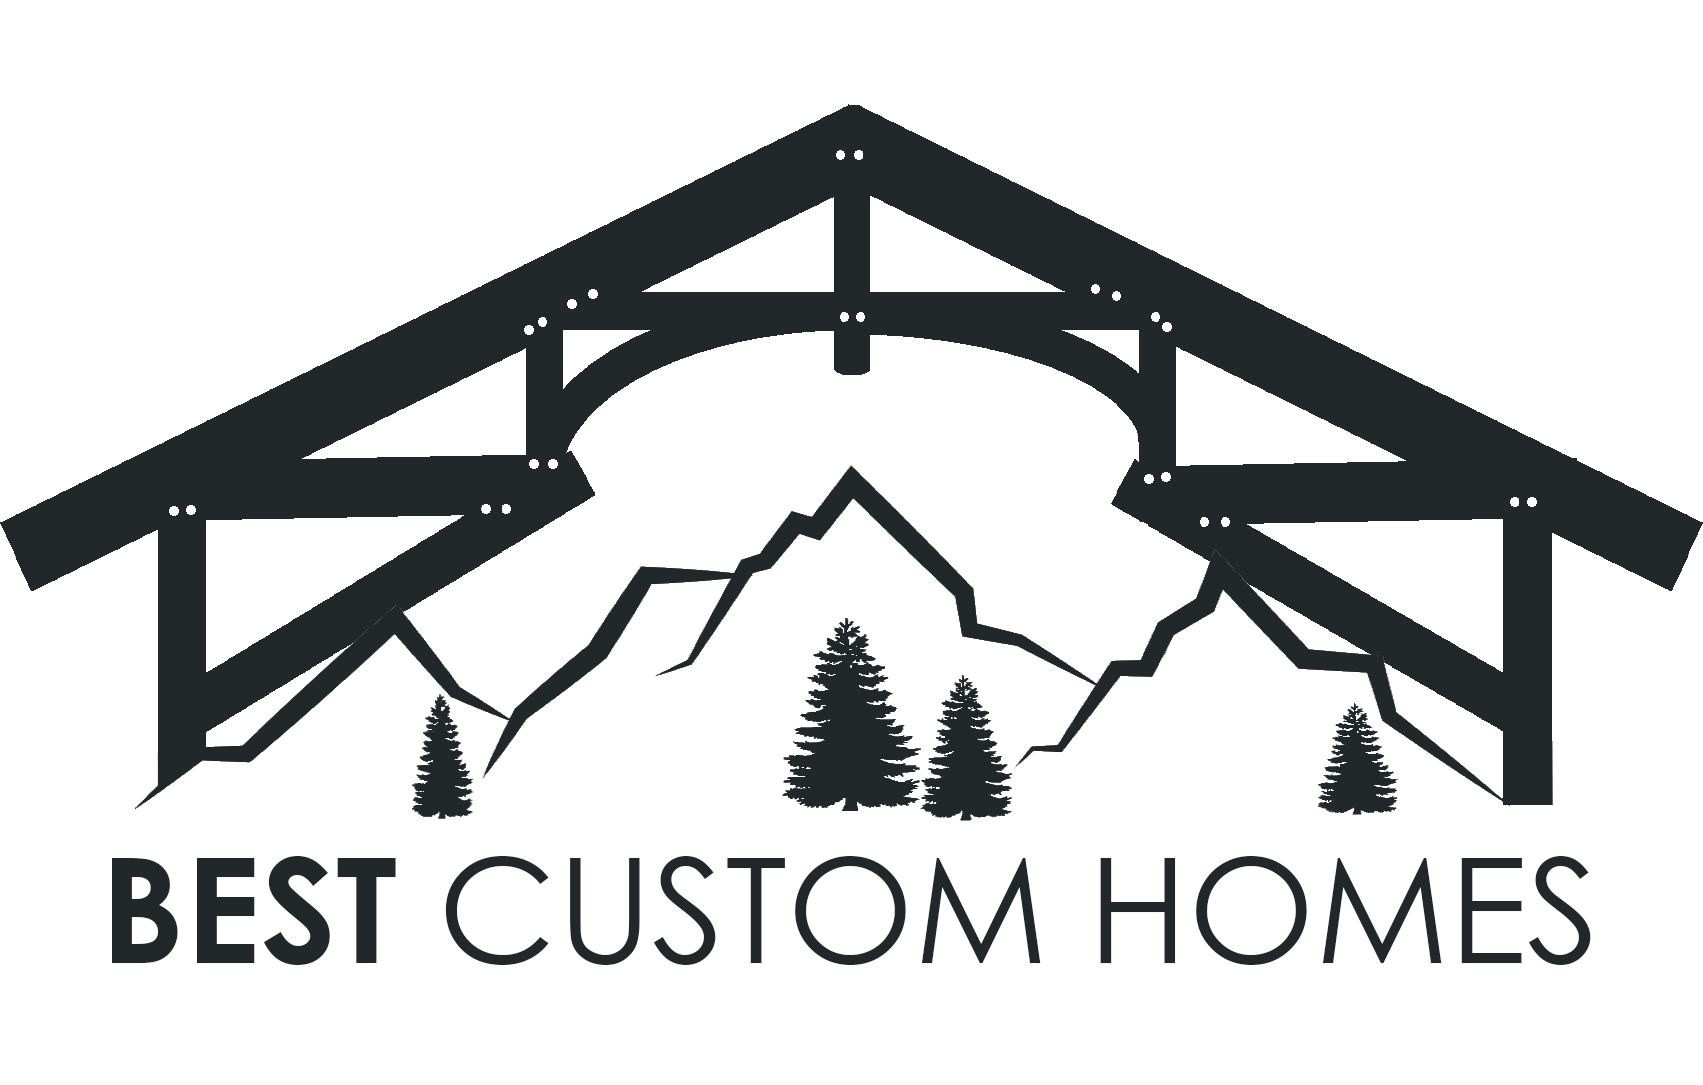 Best Custom Homes logo